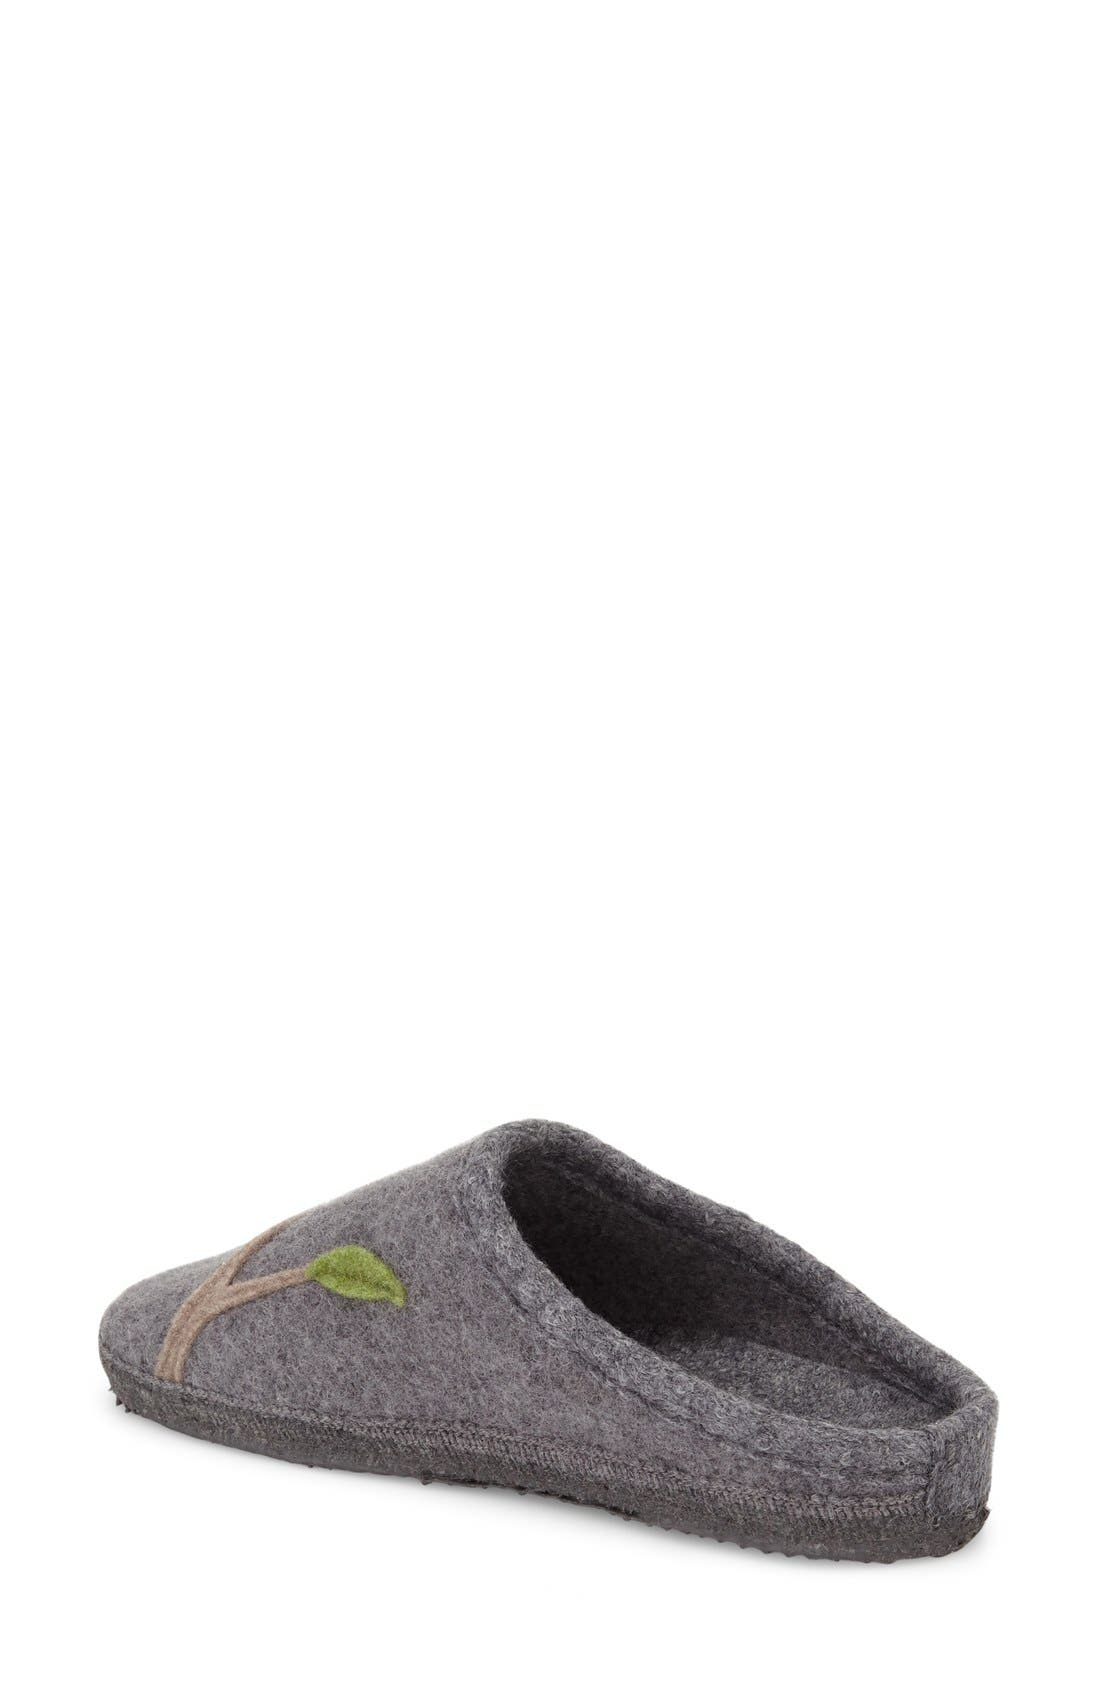 'Angela' Wool Slipper,                             Alternate thumbnail 12, color,